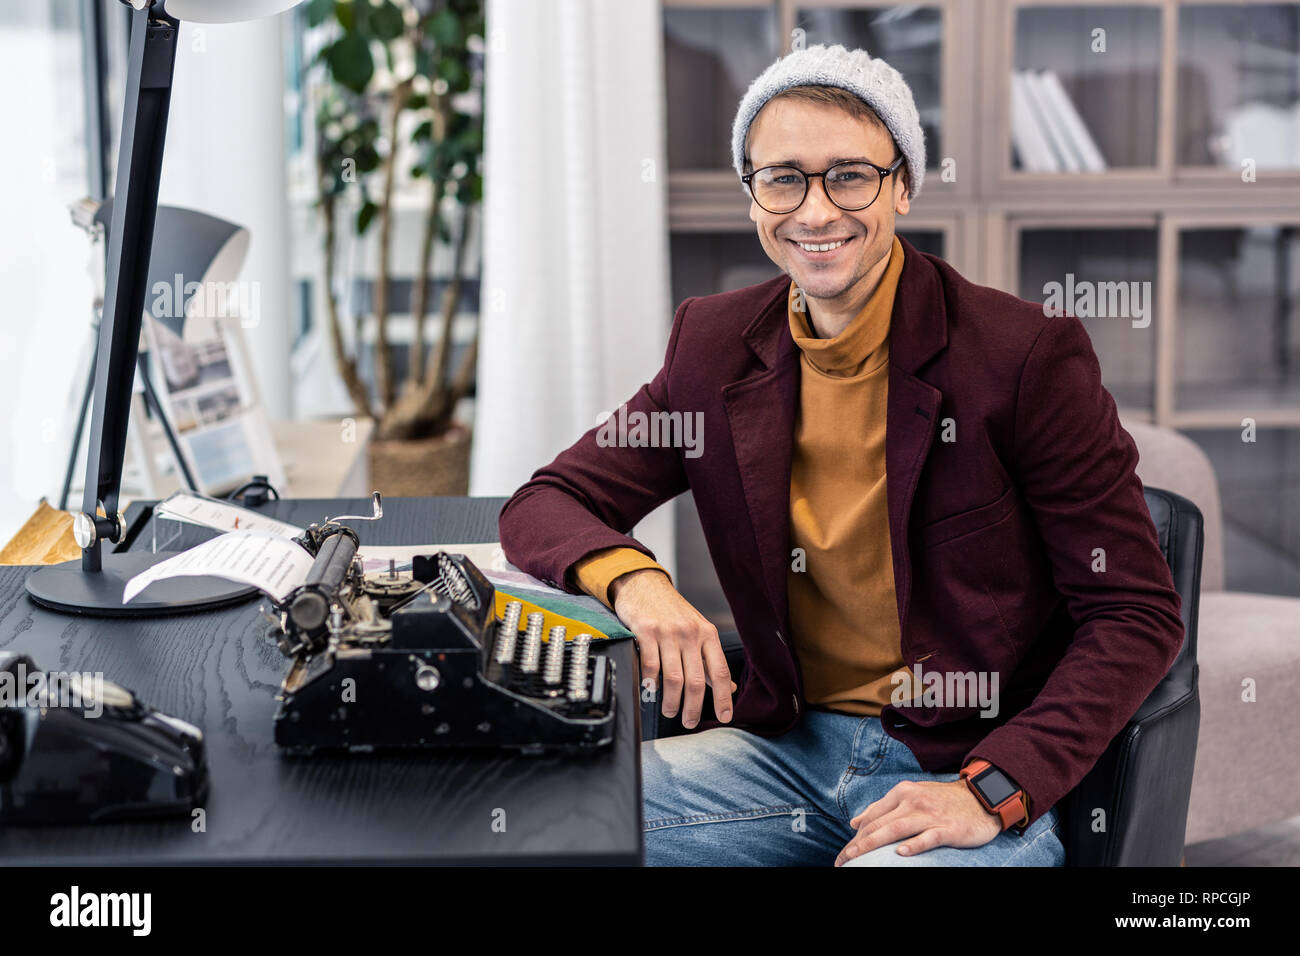 Fanciable young dark-haired man posing at desk with typewriters - Stock Image